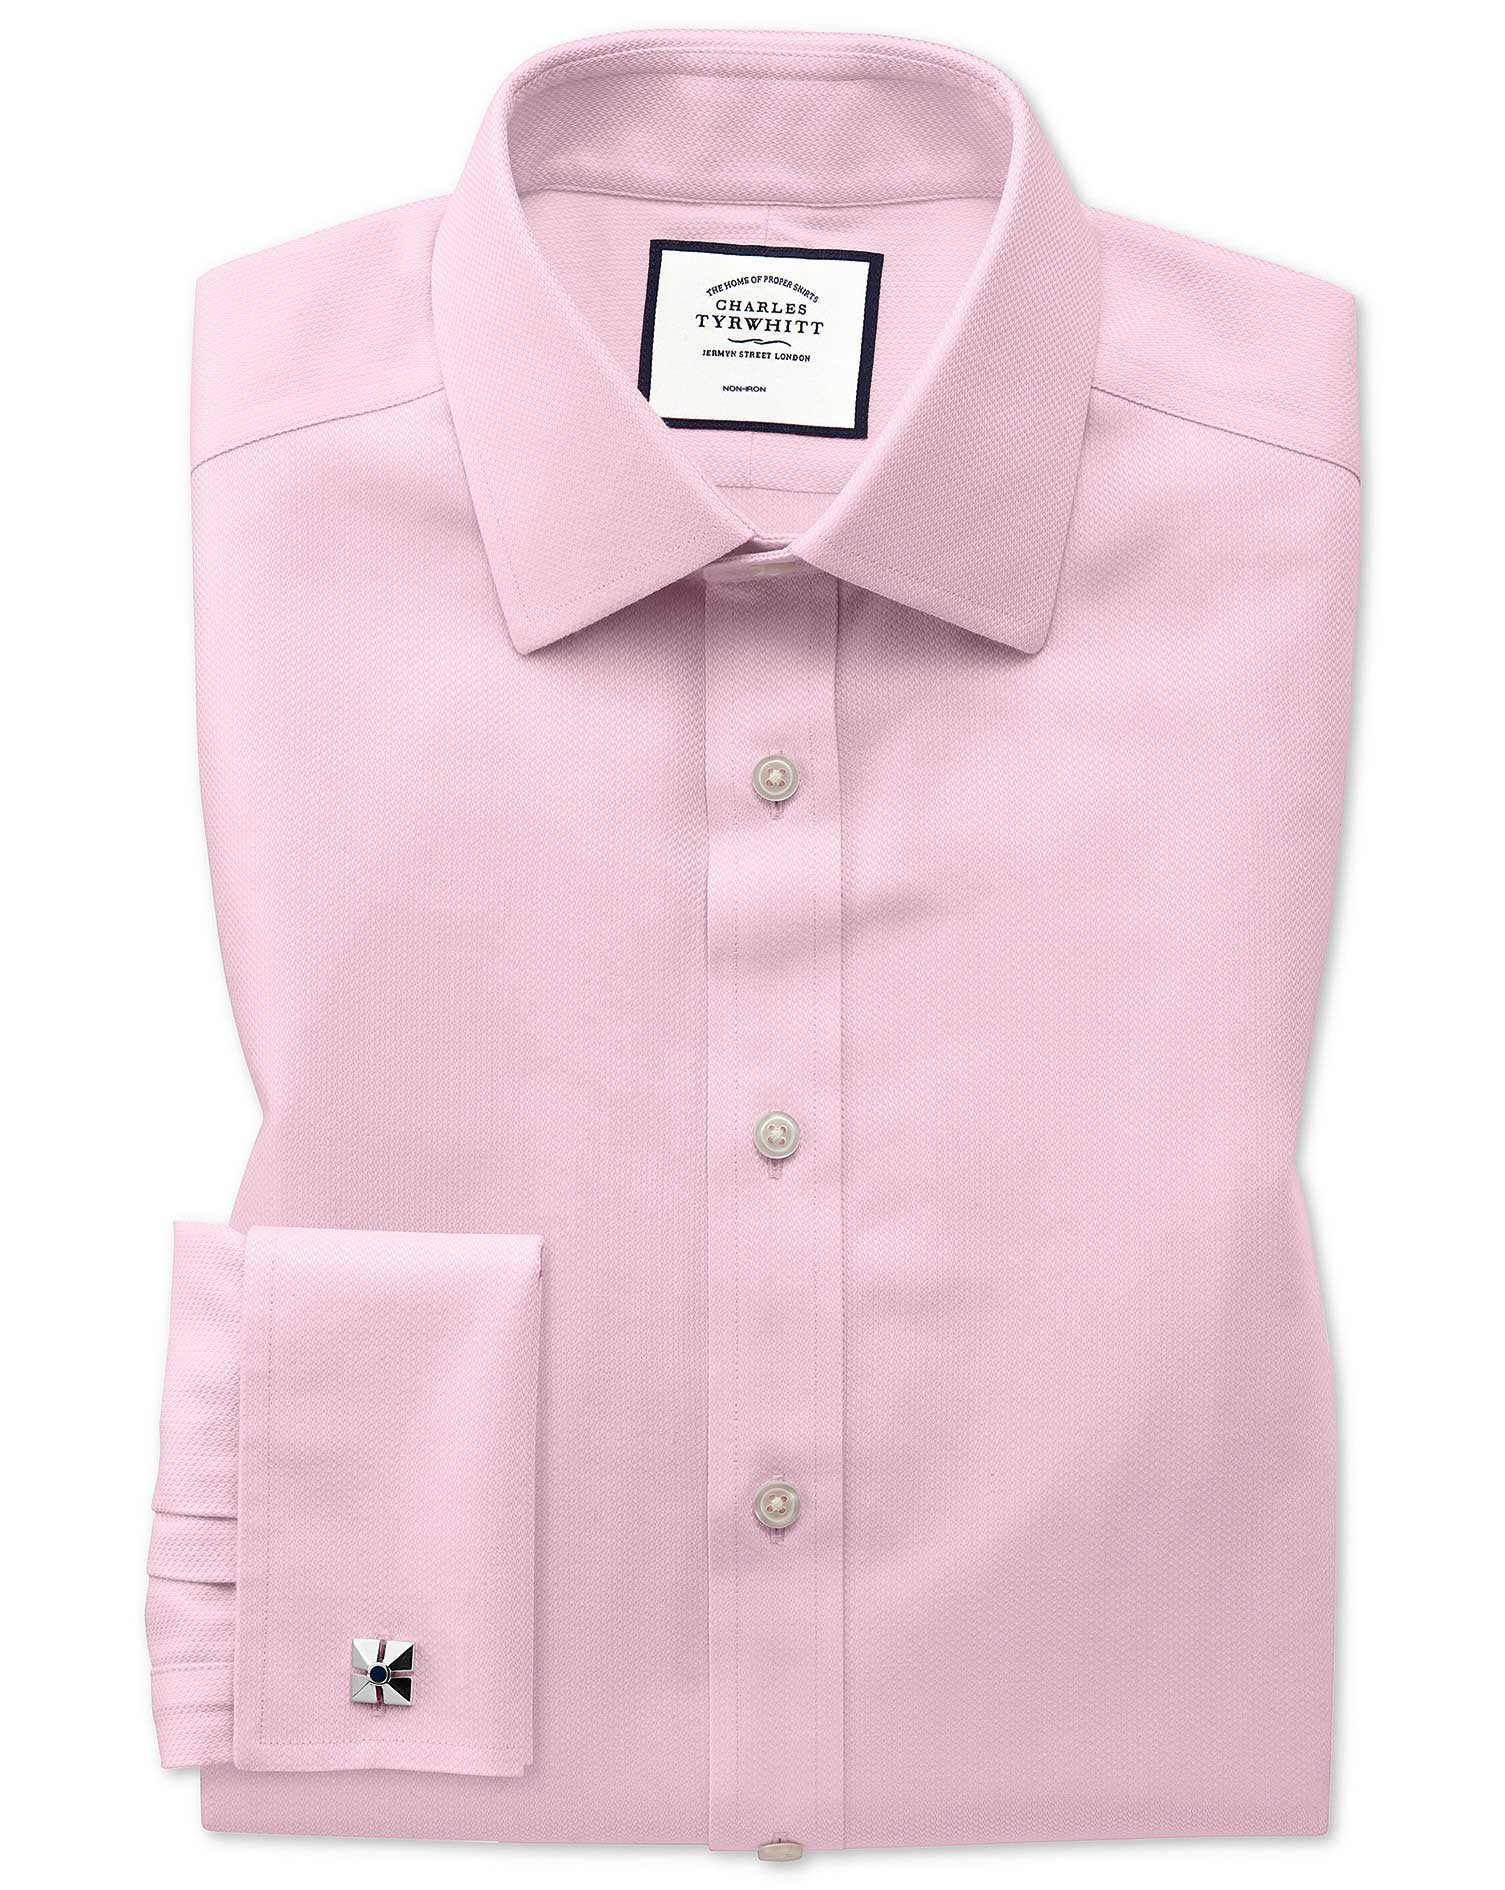 85b9833c Extra Slim Fit Non-Iron Pink Arrow Weave Cotton Formal Shirt Single Cuff  Size 16.5/33 by Charles Tyrwhitt